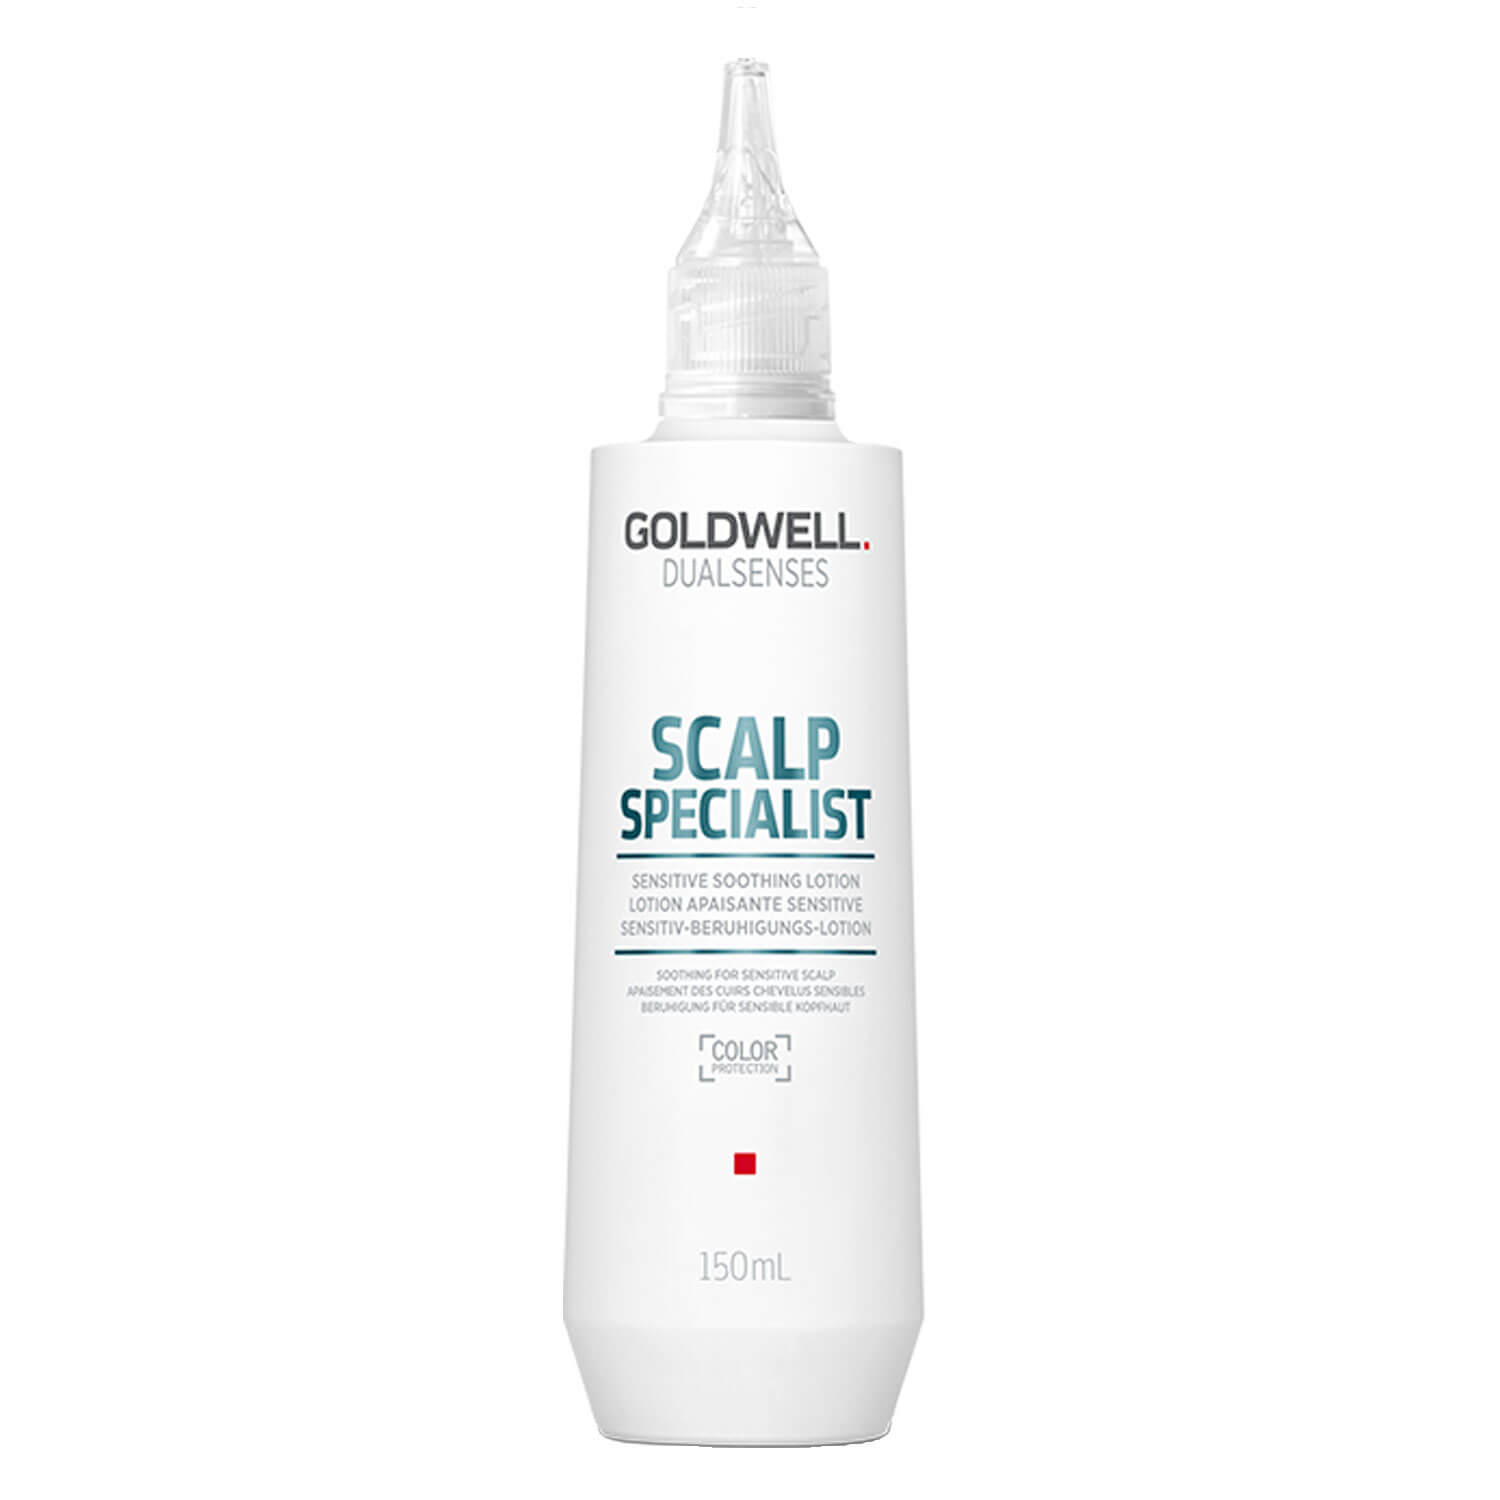 Dualsenses Scalp Specialist - Soothing Lotion - 150ml